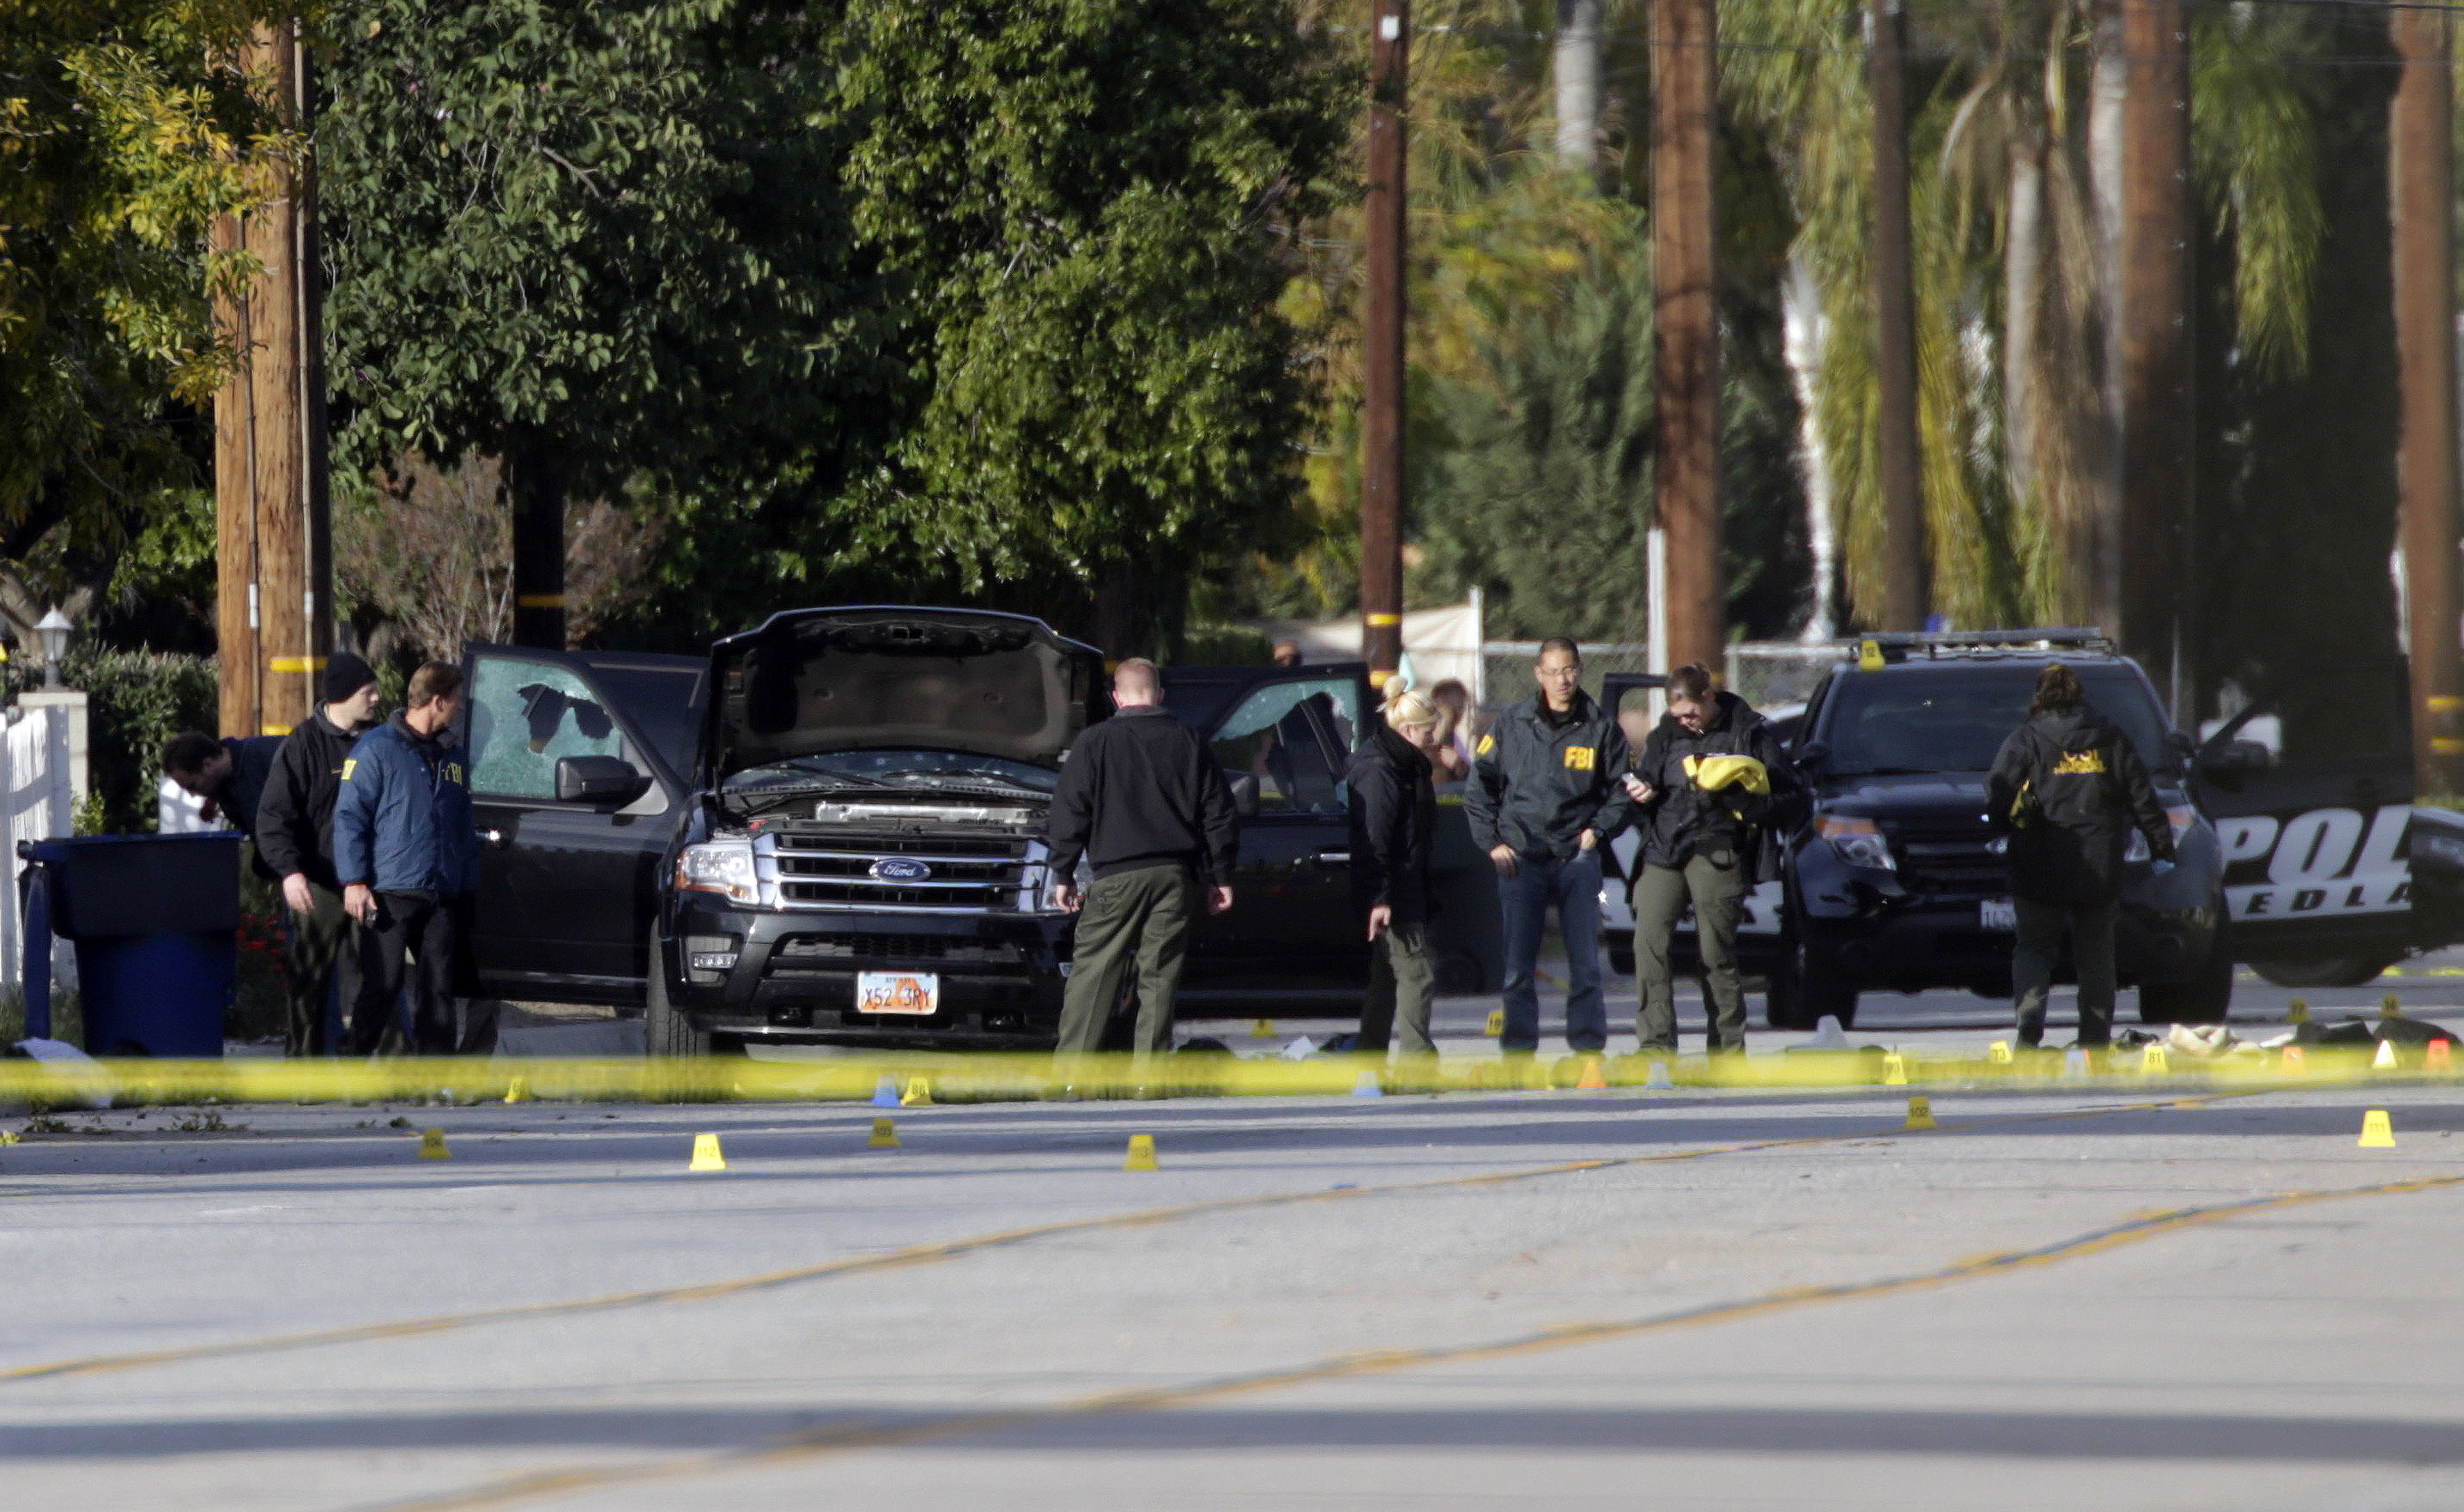 Law enforcement personnel continue to investigate on San Bernardino Avenue, where two suspects in the mass shooting at the Inland Regional Center died in a shootout with police in San Bernardino, Calif. on Dec. 3, 2015.